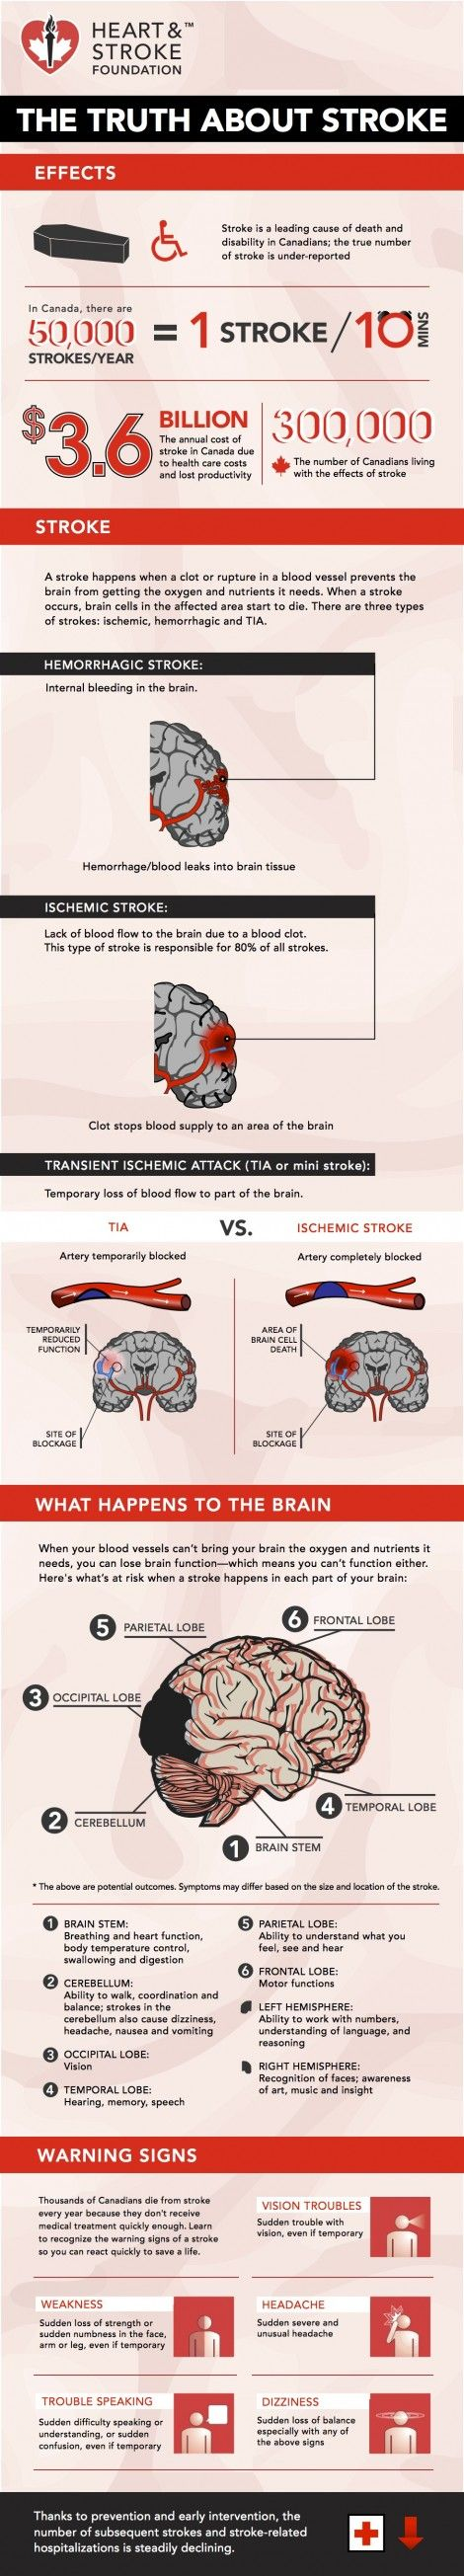 29 best Stroke Awareness and Prevention images on Pinterest | Diff ...